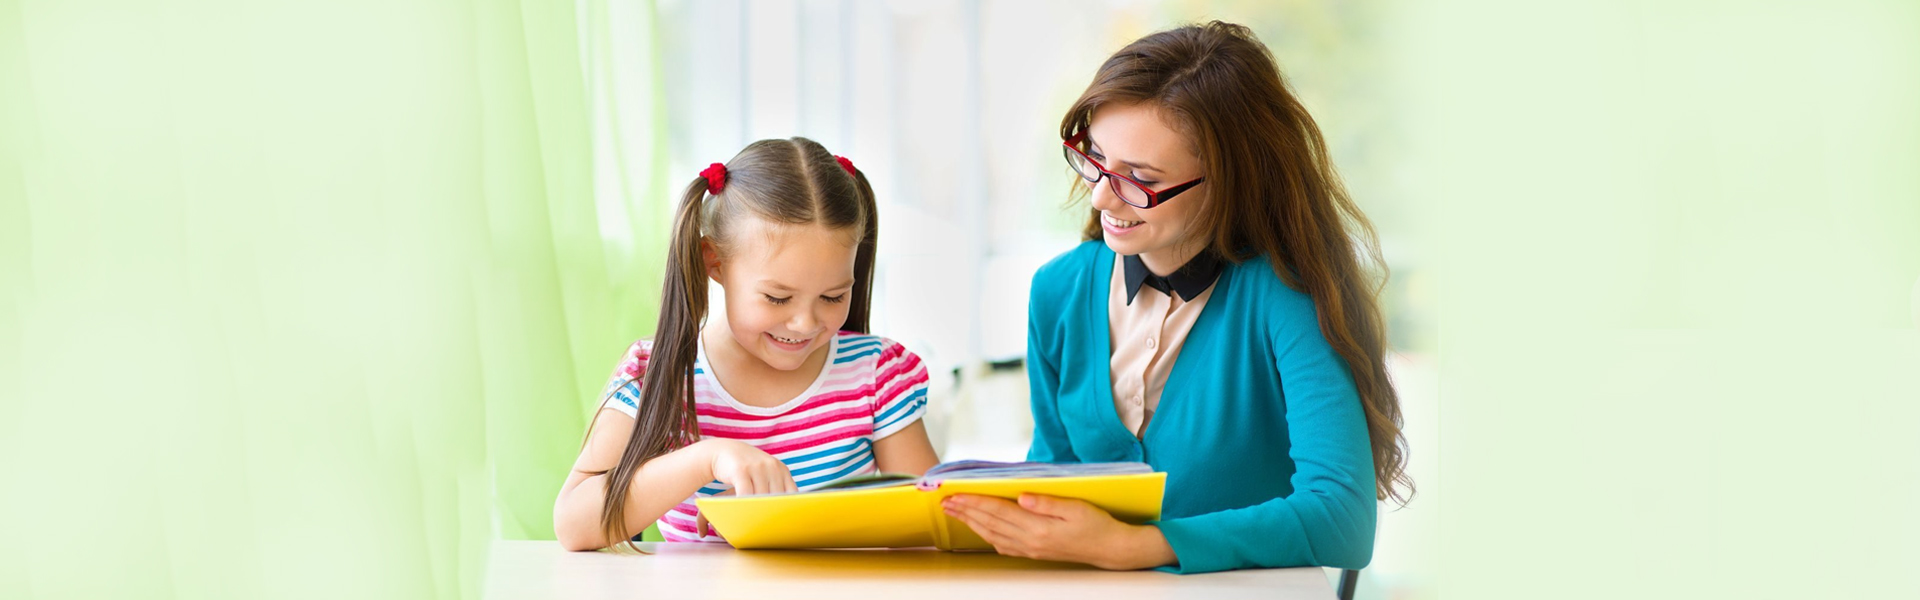 Teacher help in studying to a small girl